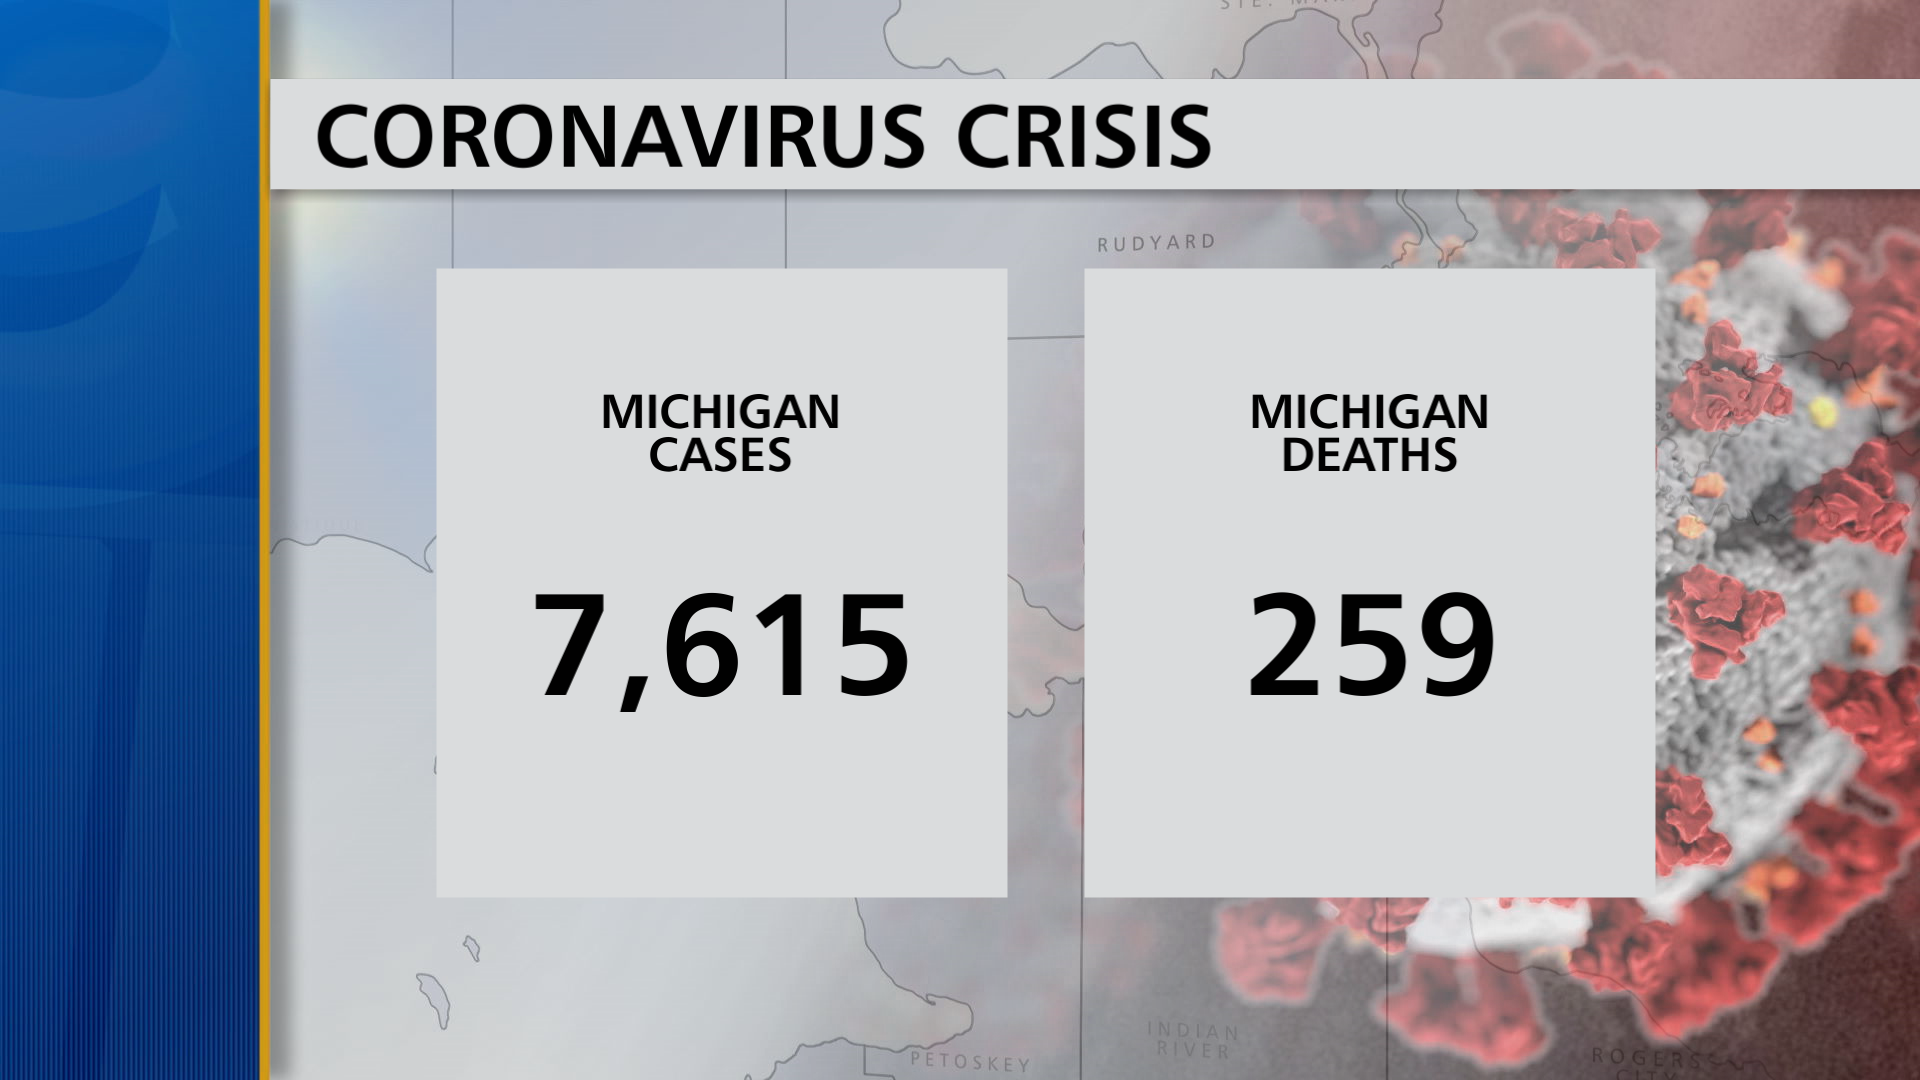 Breaking 7 615 Confirmed Coronavirus Cases In Michigan 259 Deaths 9 10 News